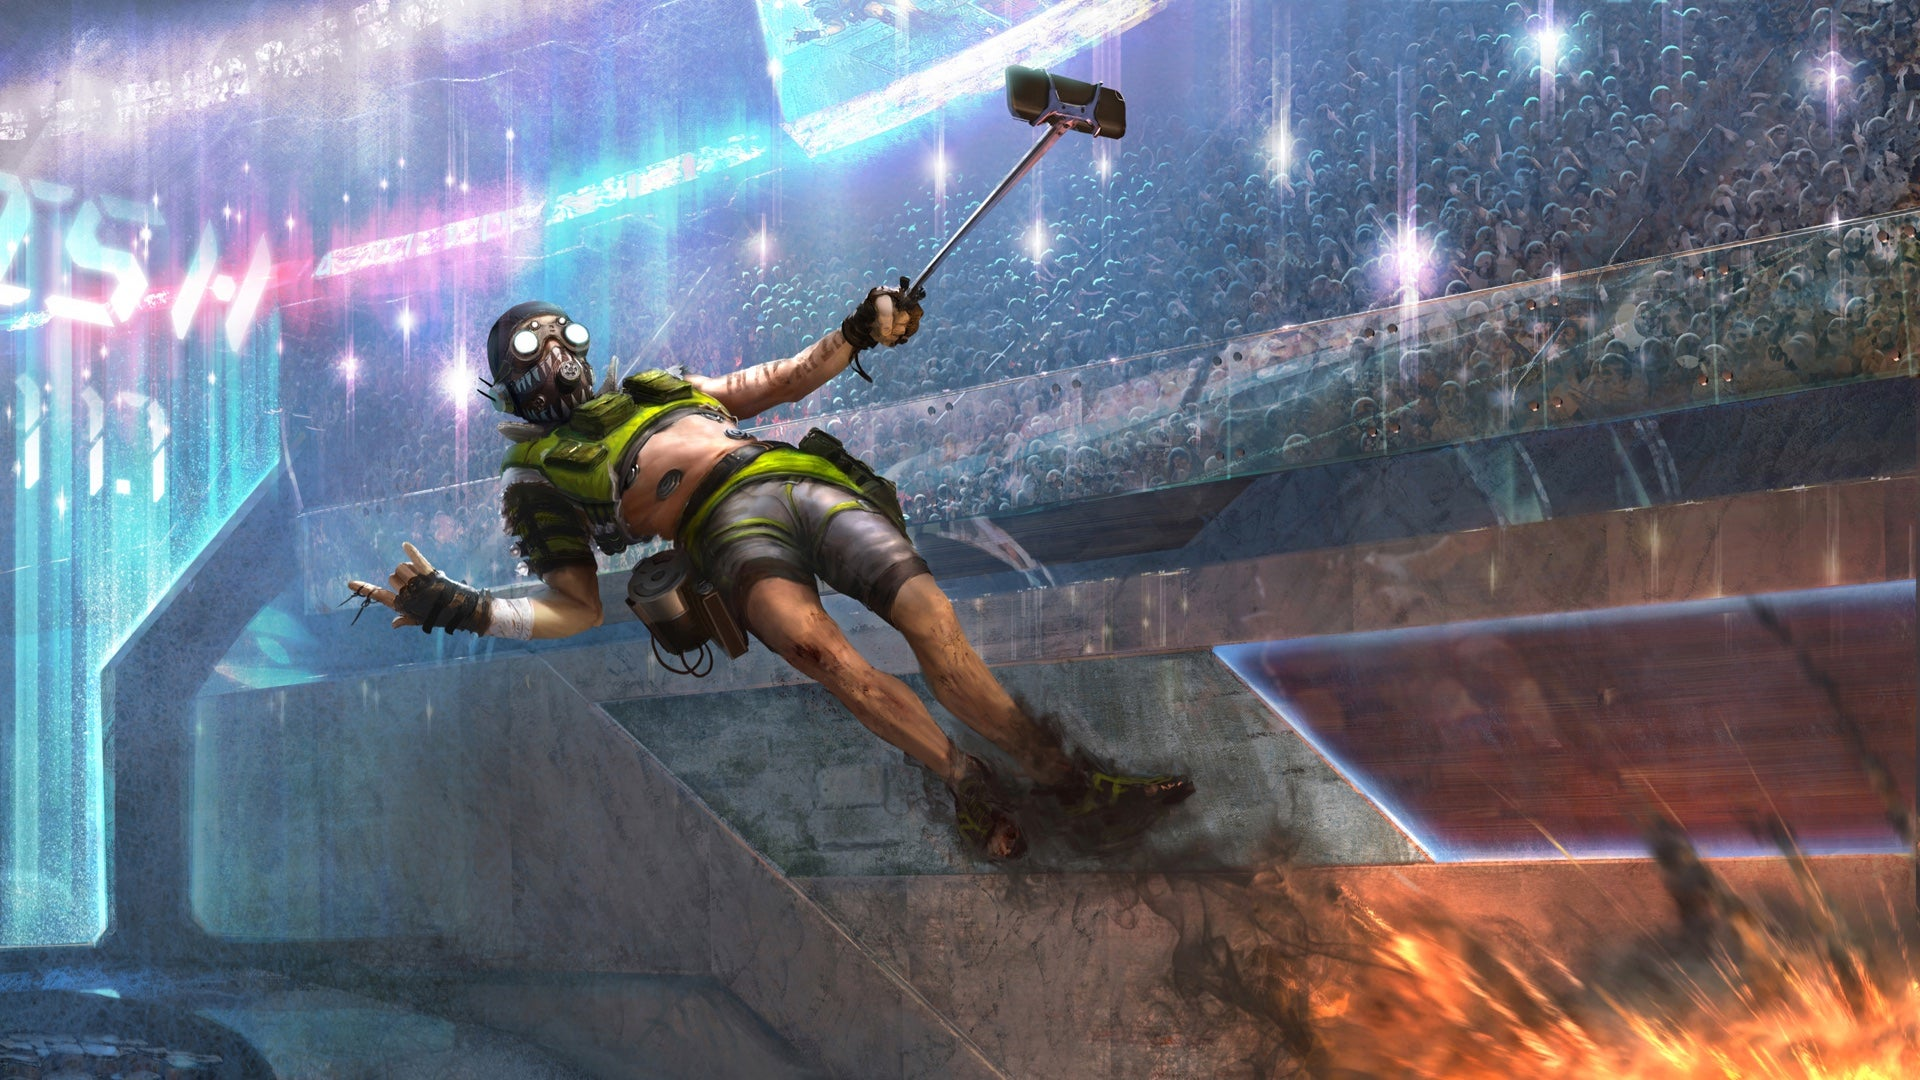 Respawn Details Its Plan To Keep Apex Legends Fresh, But Avoid Employee Burnout